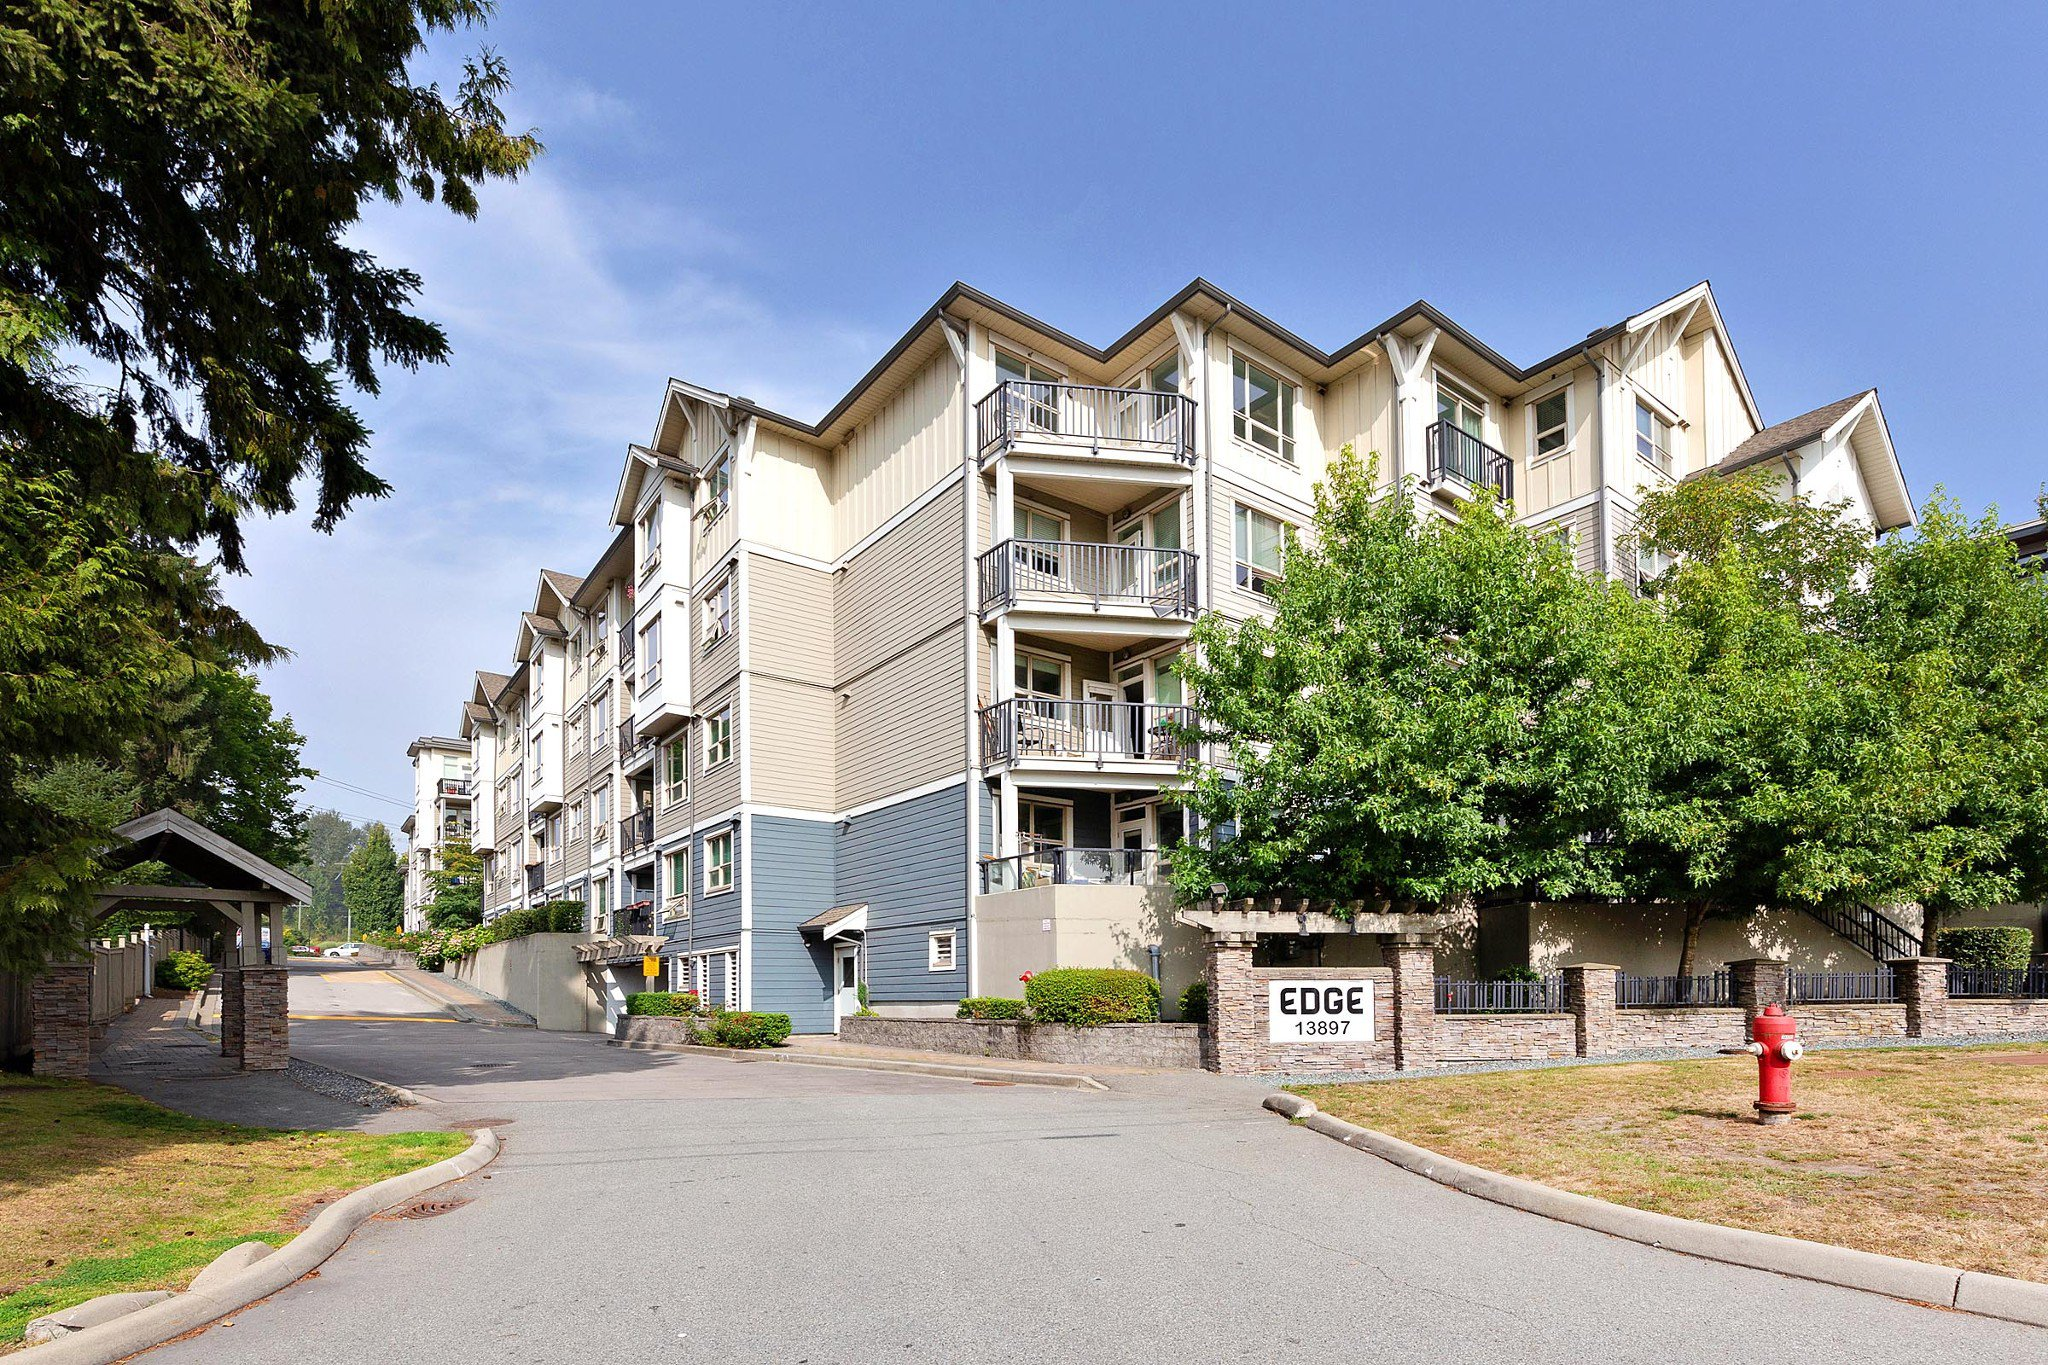 """Main Photo: 326 13897 FRASER Highway in Surrey: Whalley Condo for sale in """"THE EDGE"""" (North Surrey)  : MLS®# R2499236"""